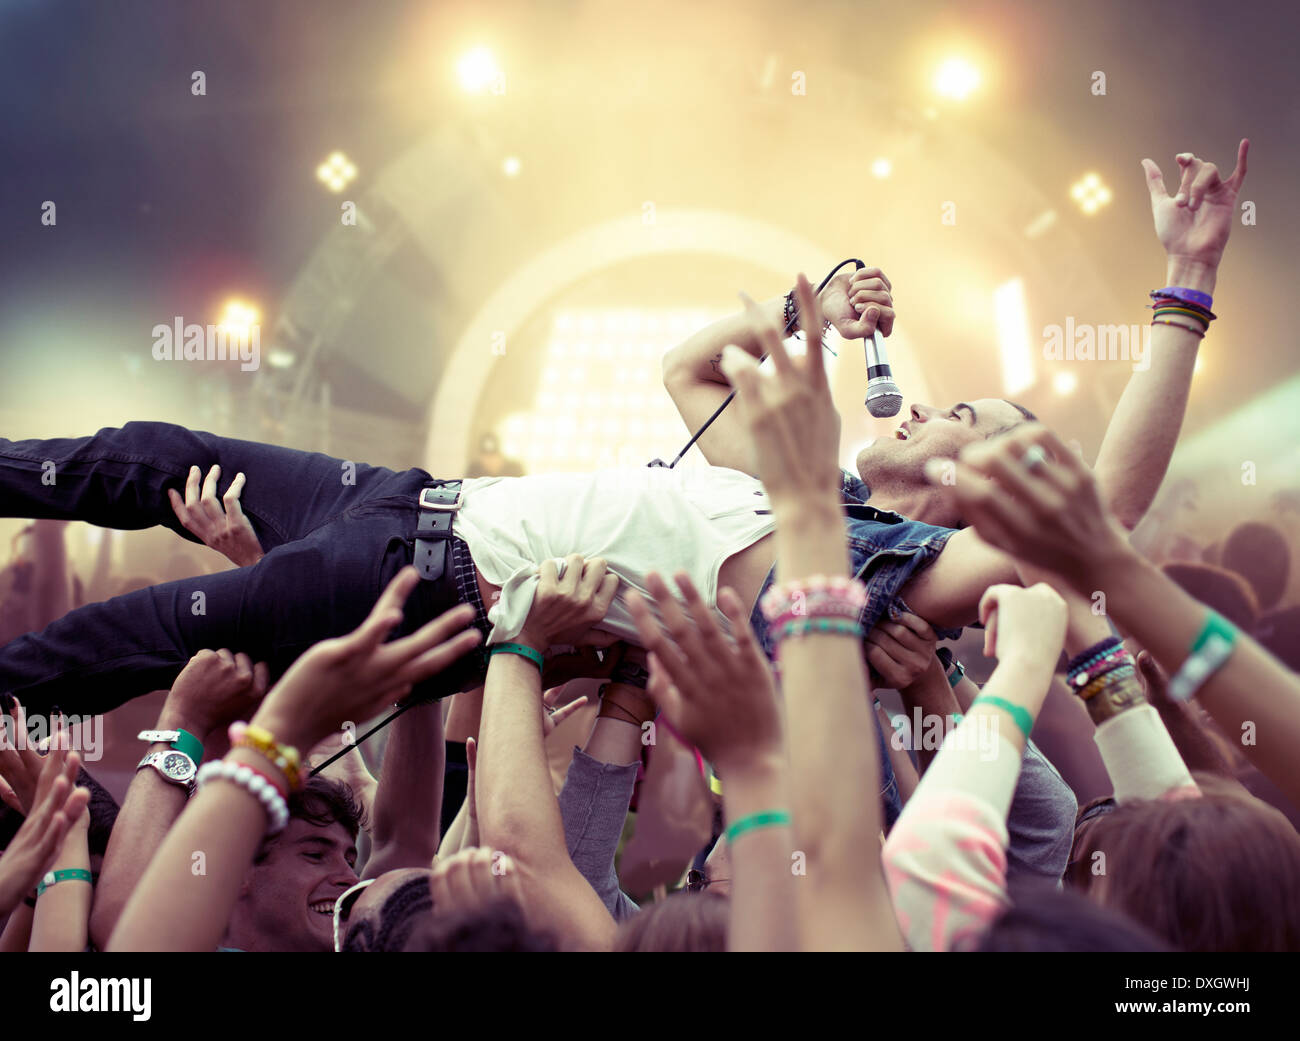 Performer crowd surfing at music festival Stock Photo